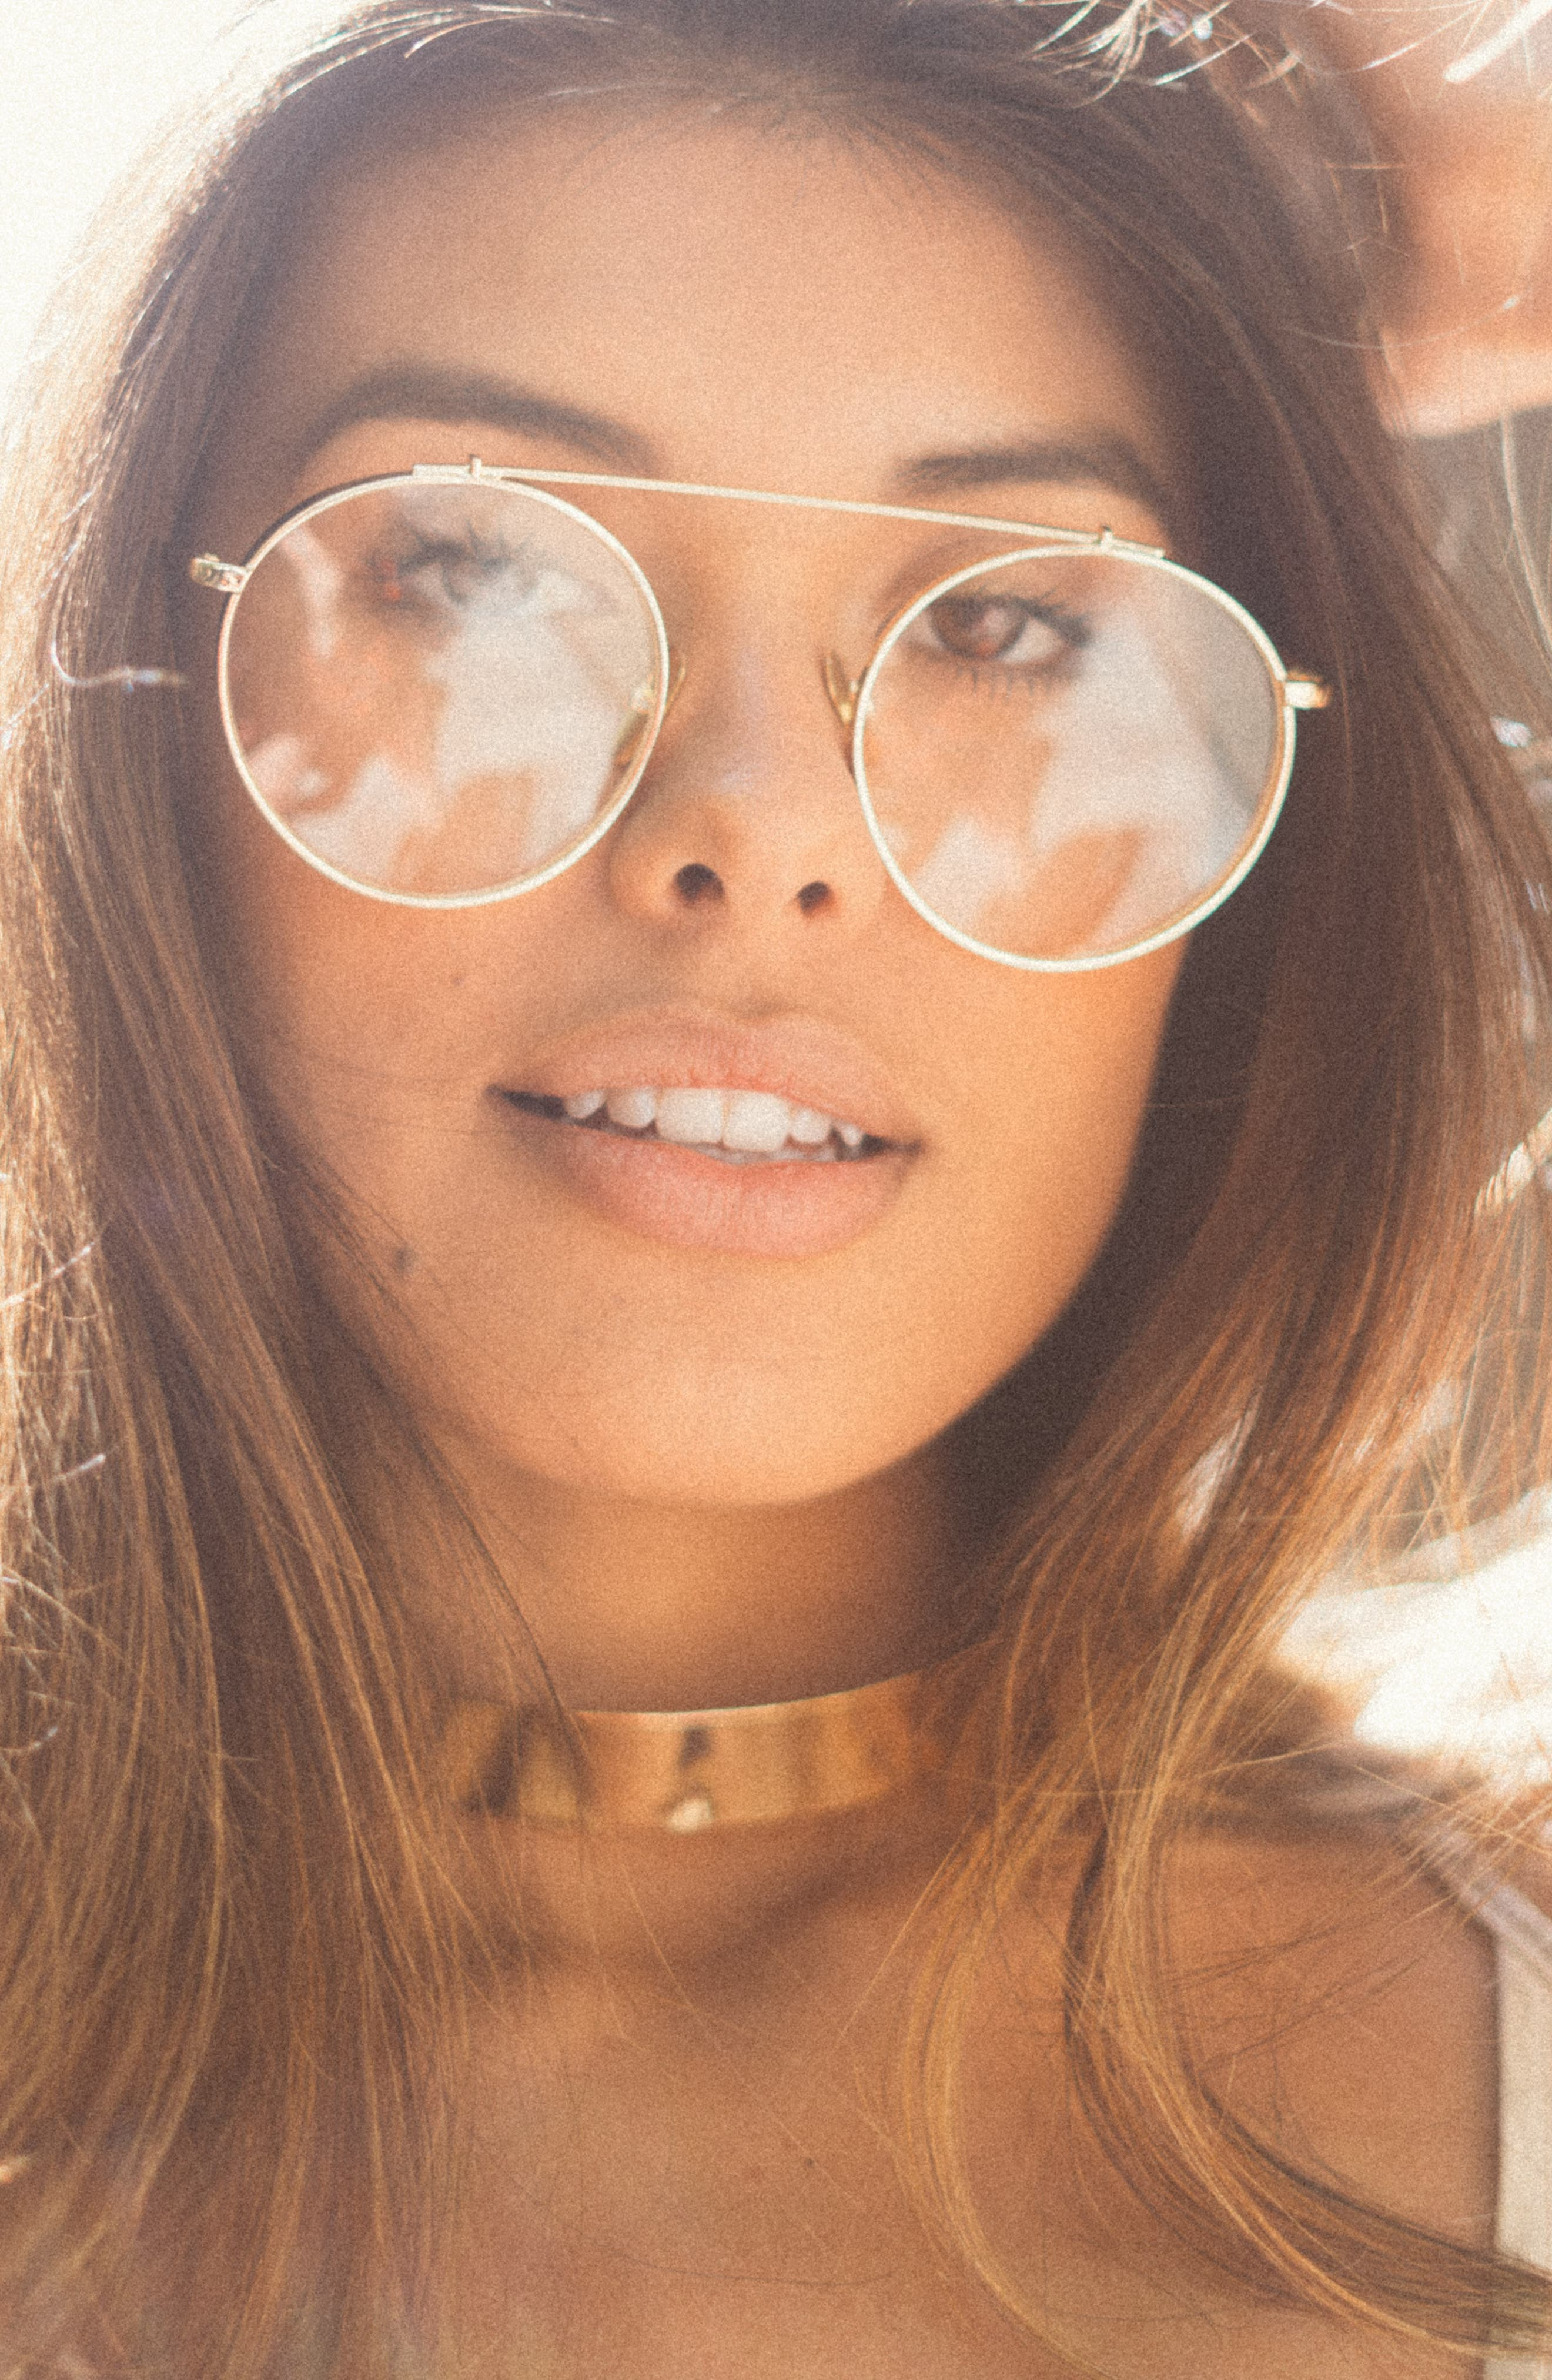 Alternate Image 2  - SunnySide LA 55mm Round Sunglasses